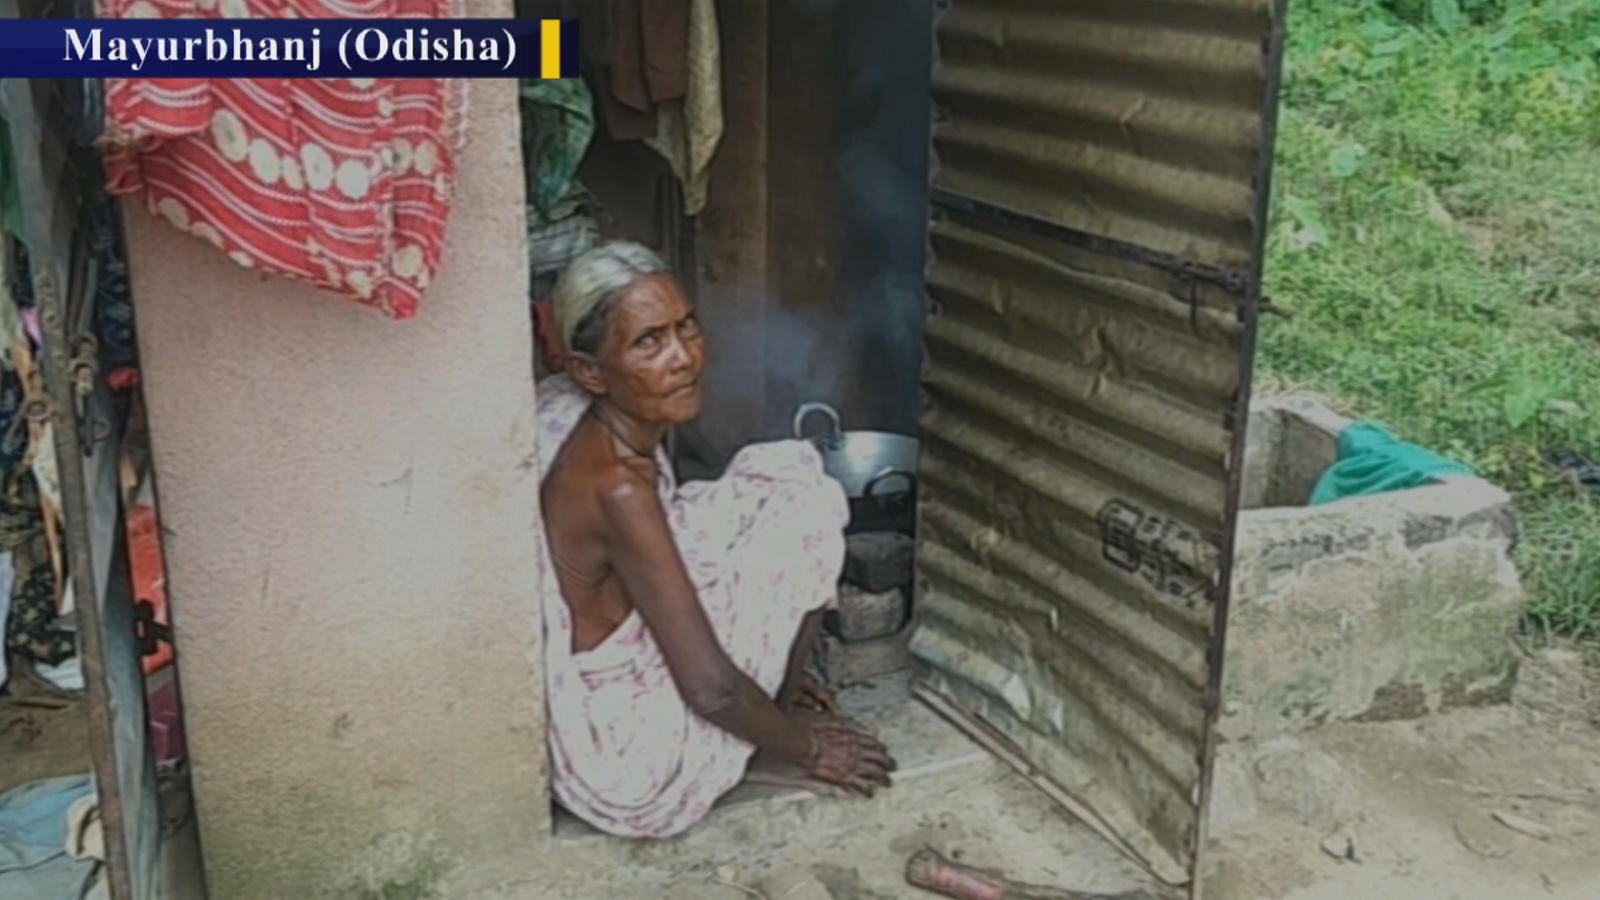 72-year-old-tribal-woman-lives-in-toilet-in-odishas-mayurbhanj